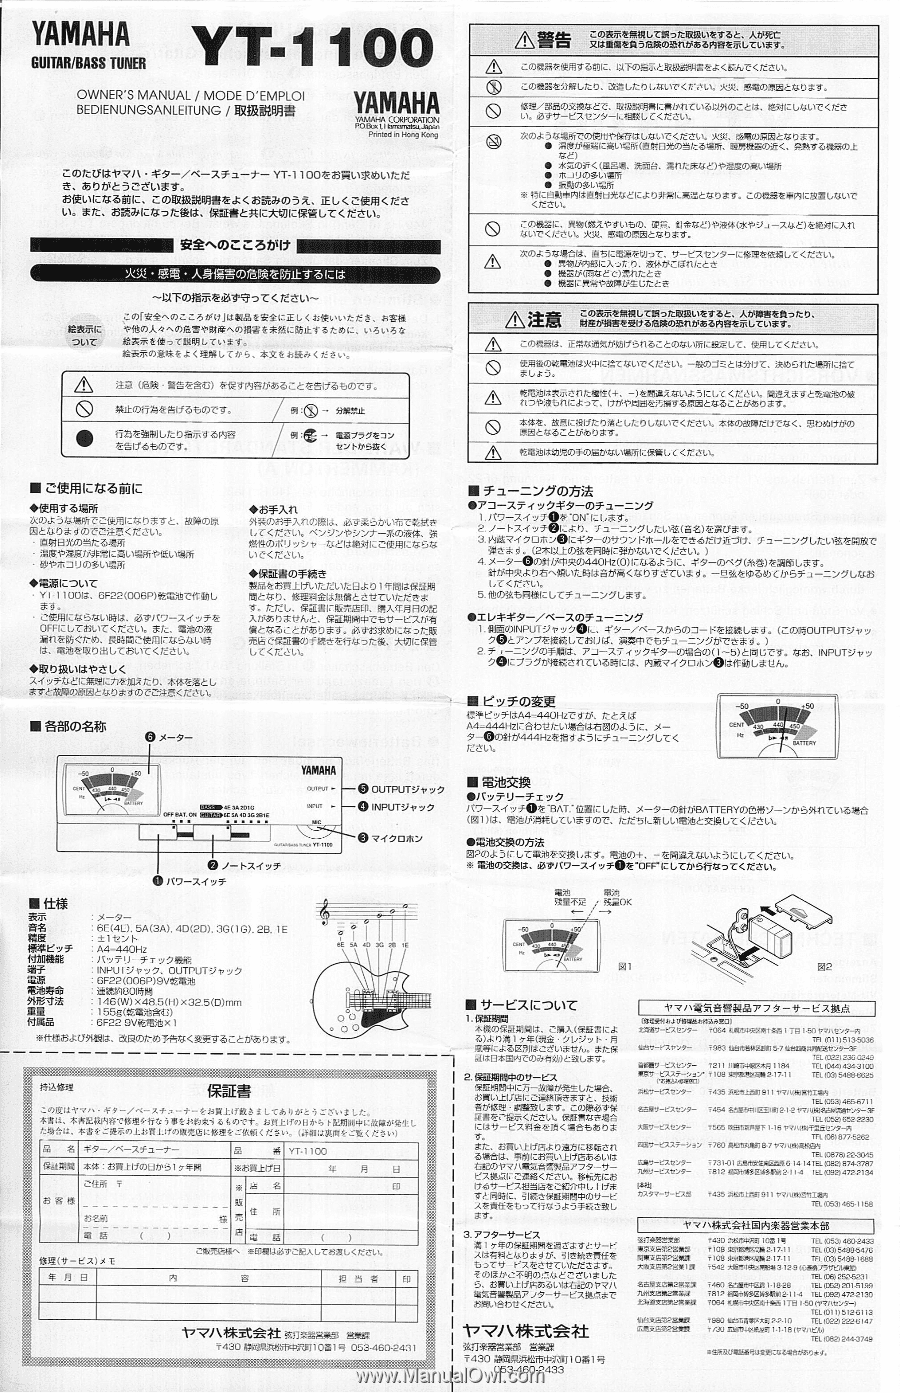 Yamaha Cdc 735 Service Manual